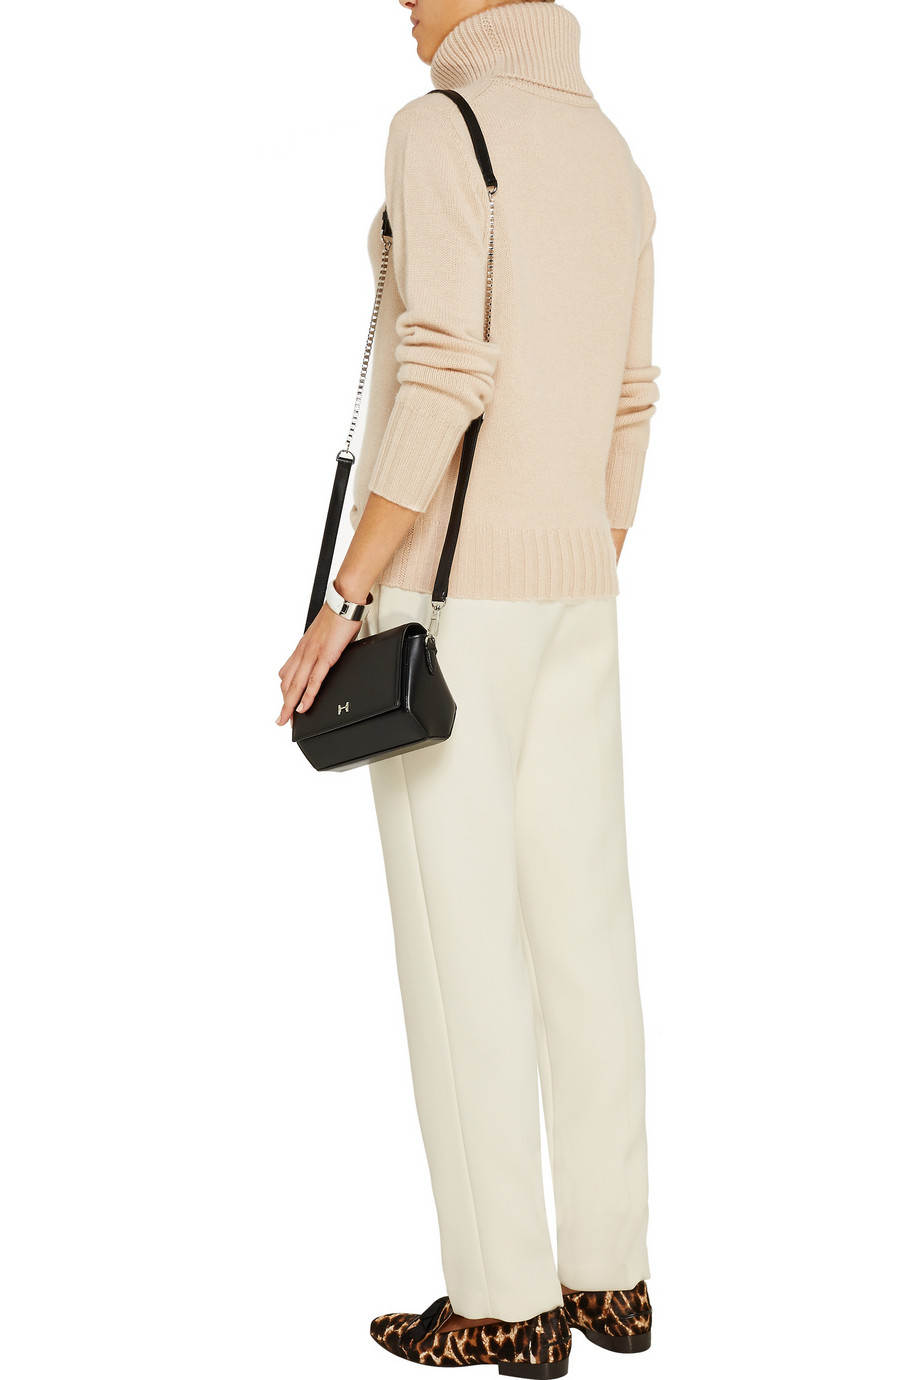 N.Peal Cashmere Cashmere turtleneck sweater – 50% at THE OUTNET.COM